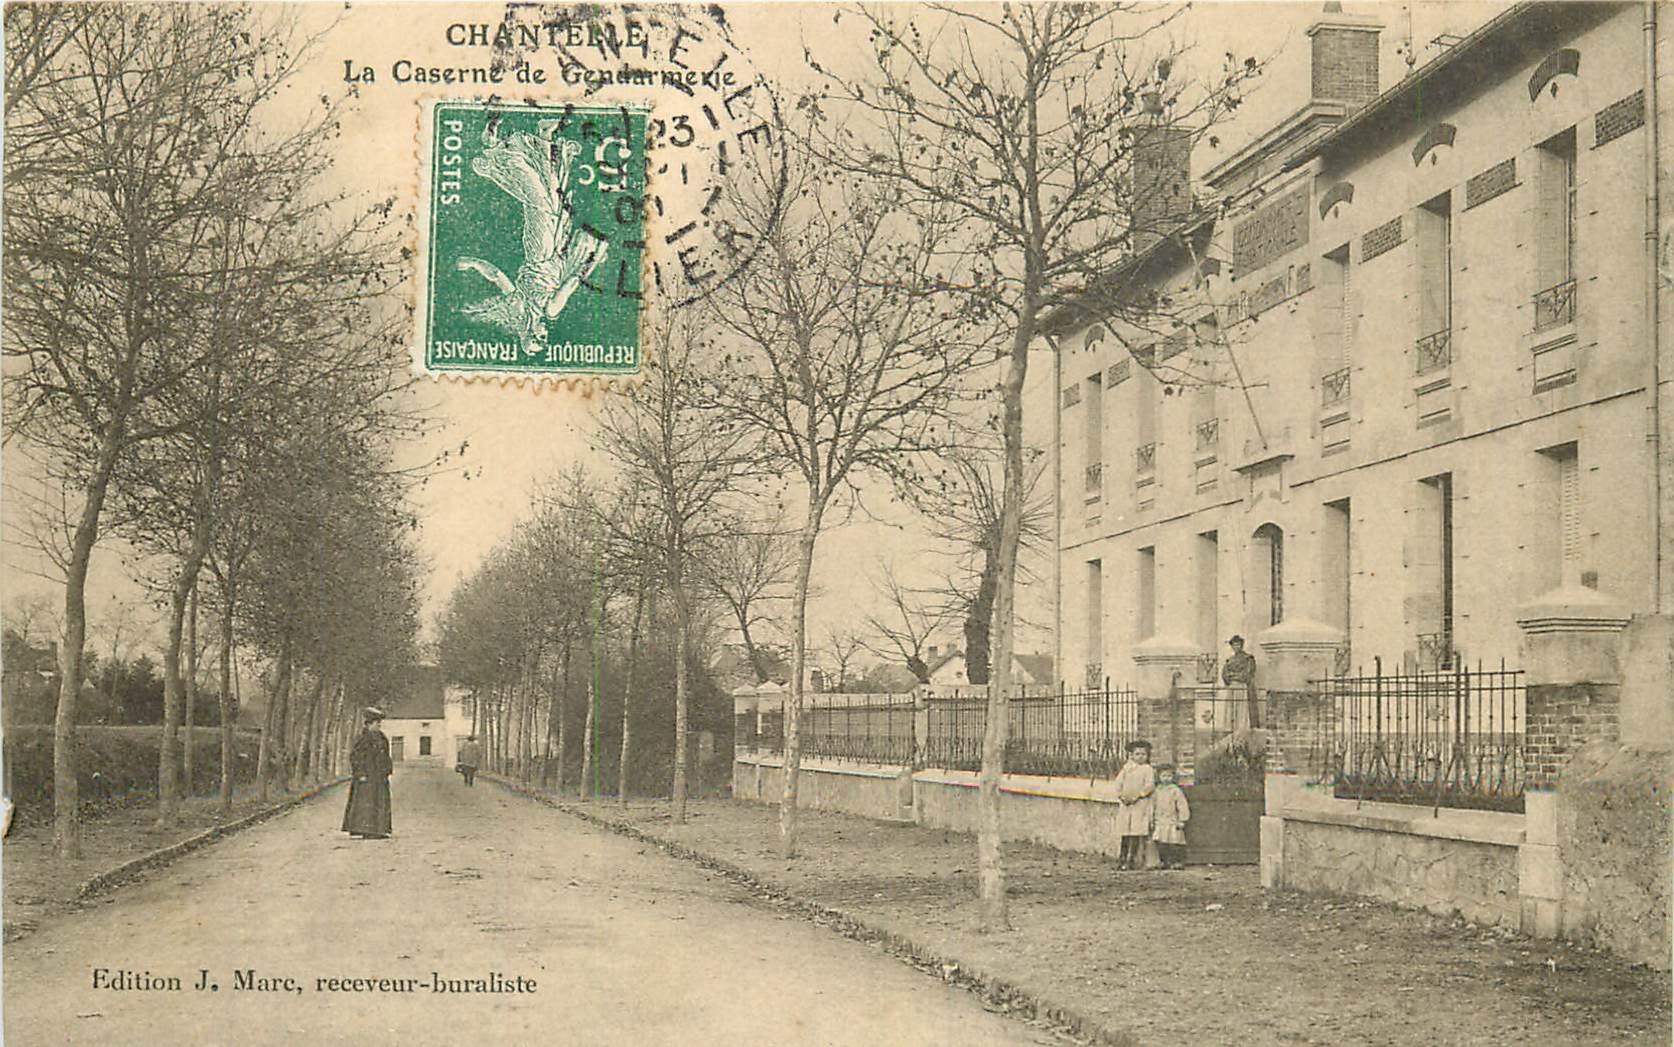 WW 03 CHANTELLE. Animation devant la Gendarmerie 1909